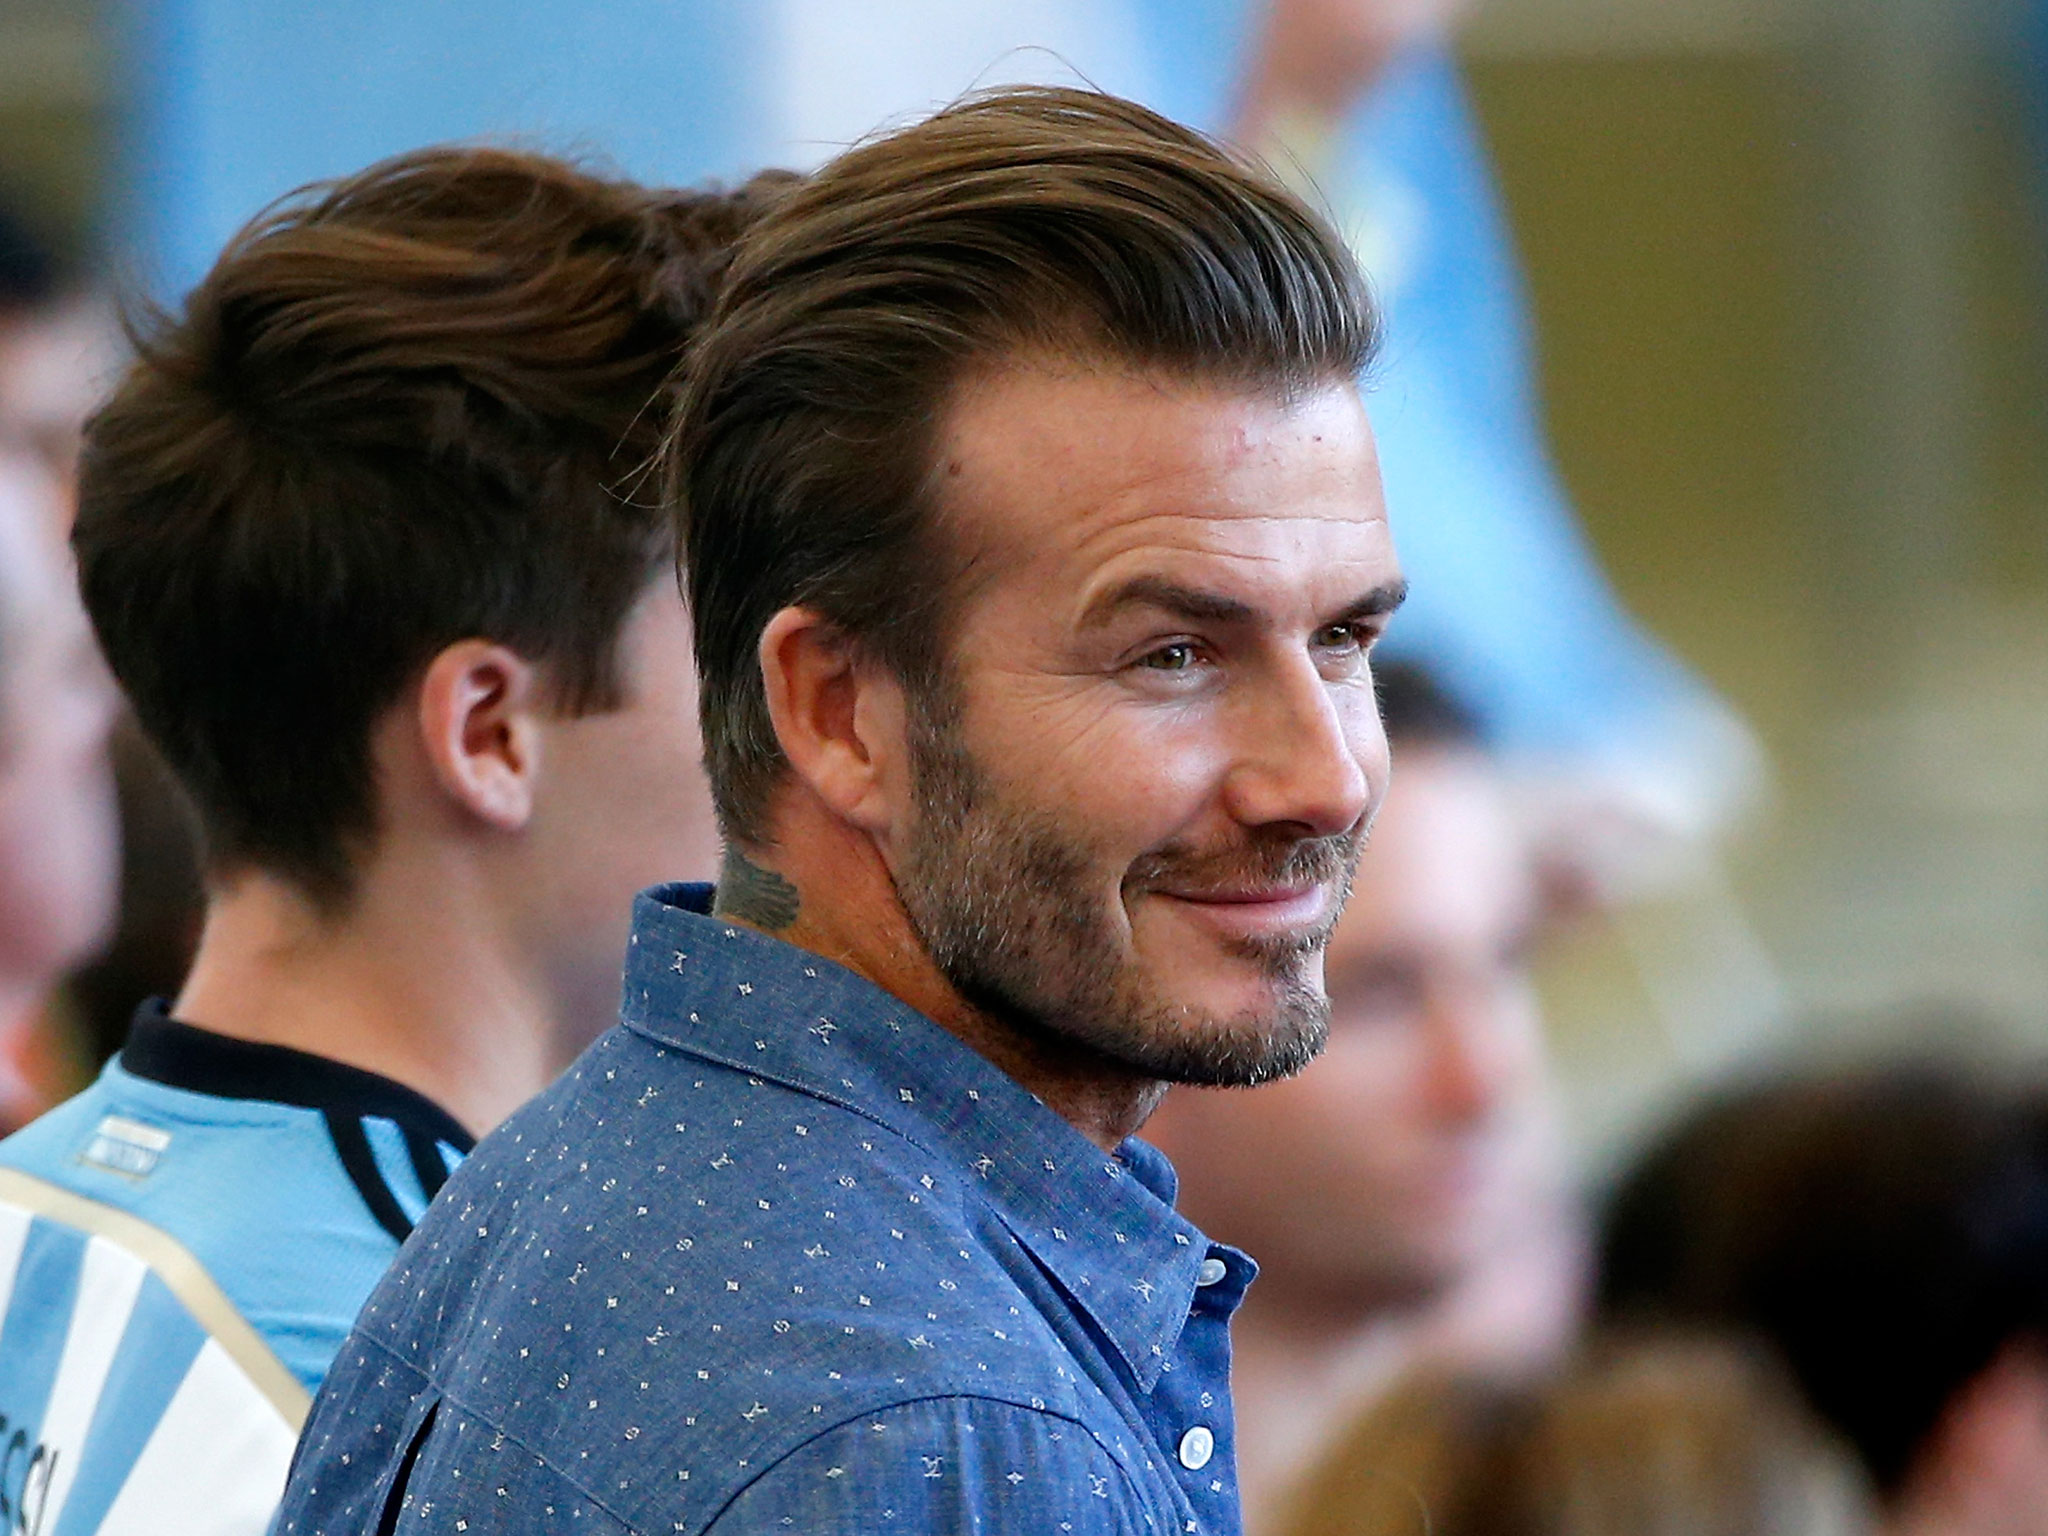 David Beckham on Scottish Independence: Sportsman urges nationals to vote 'No' and save the Union that is the 'envy of the world' - People - News - The ...